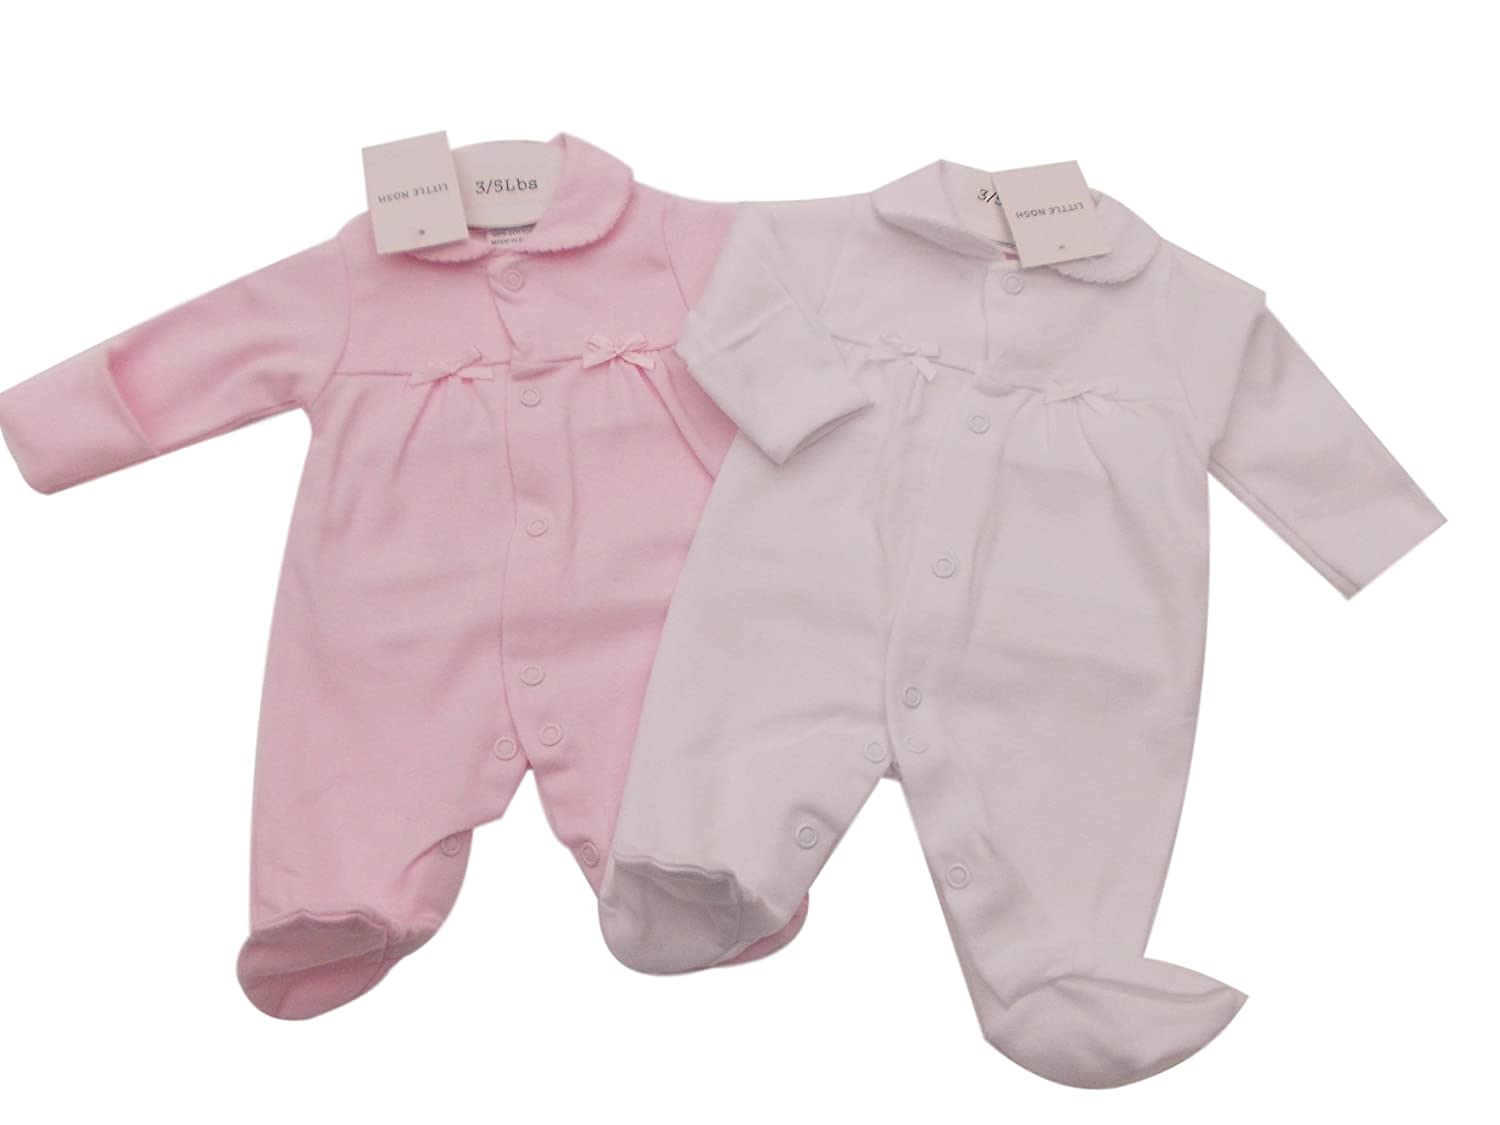 BNWT Tiny Baby NB Premature Preemie Baby white or pink cotton sleepsuit Clothes Pink)